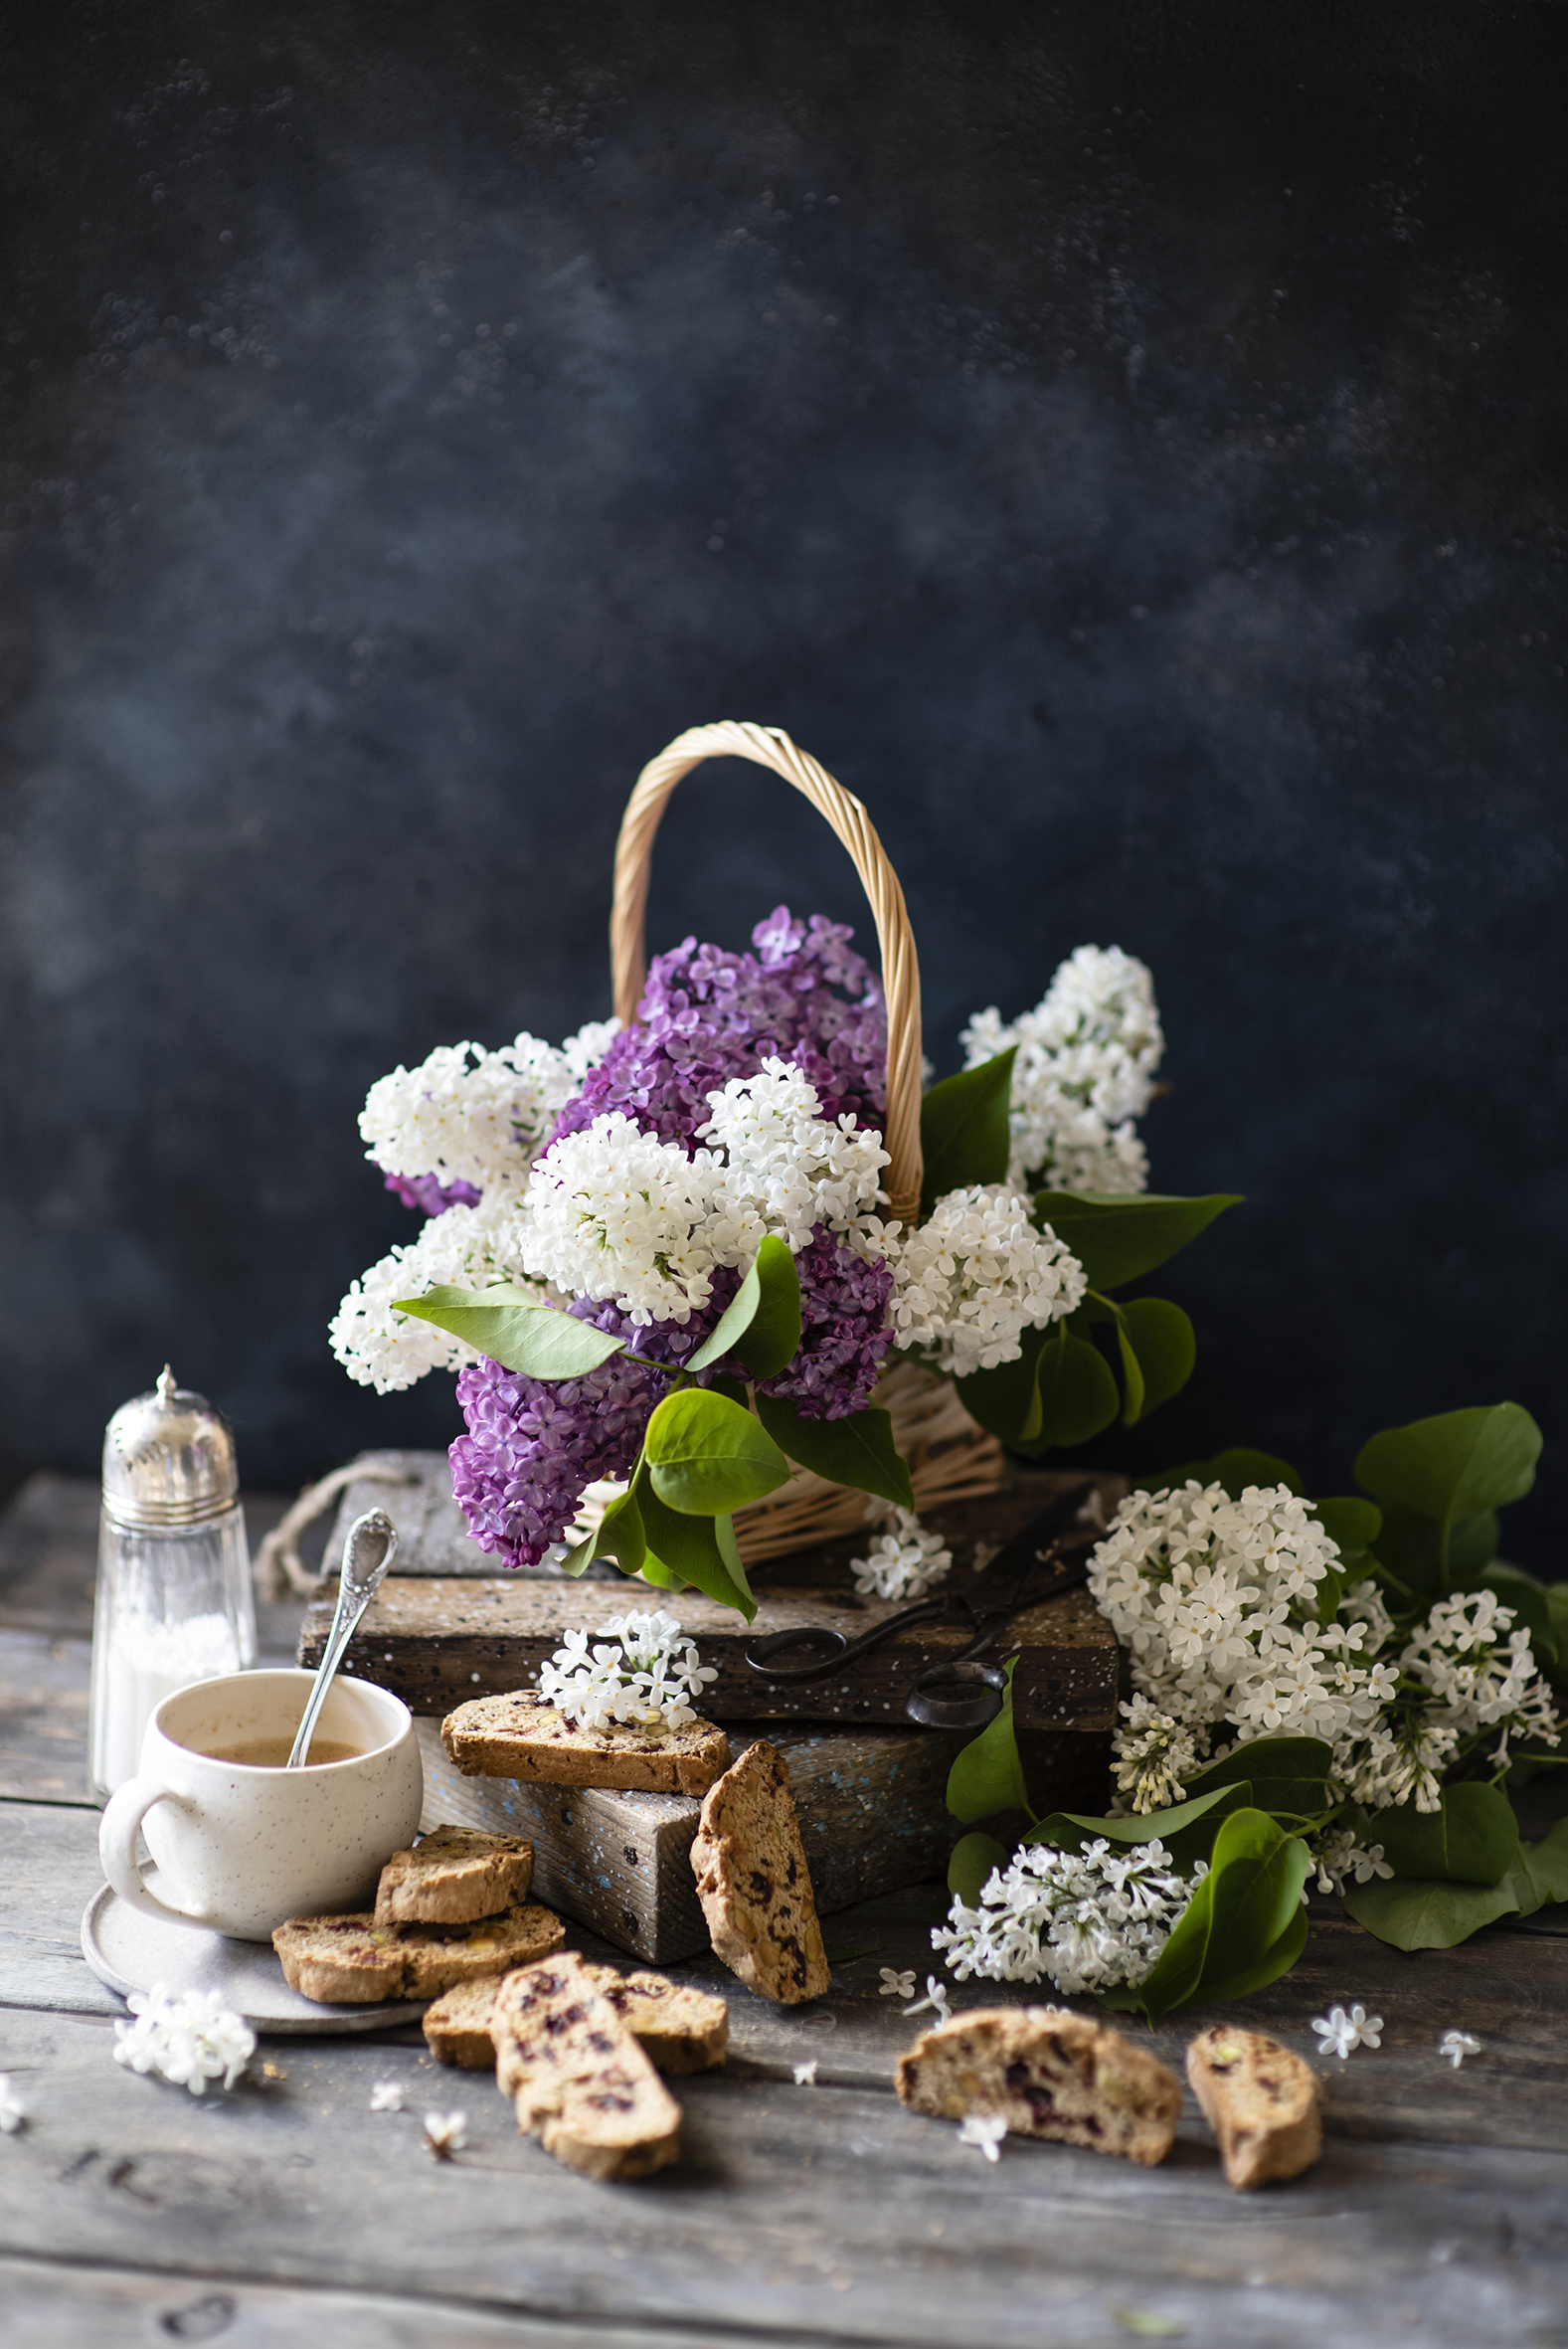 Pictures Coffee Lilac Flowers Cup Food Branches baking Still-life boards  for Mobile phone flower Syringa Pastry Wood planks